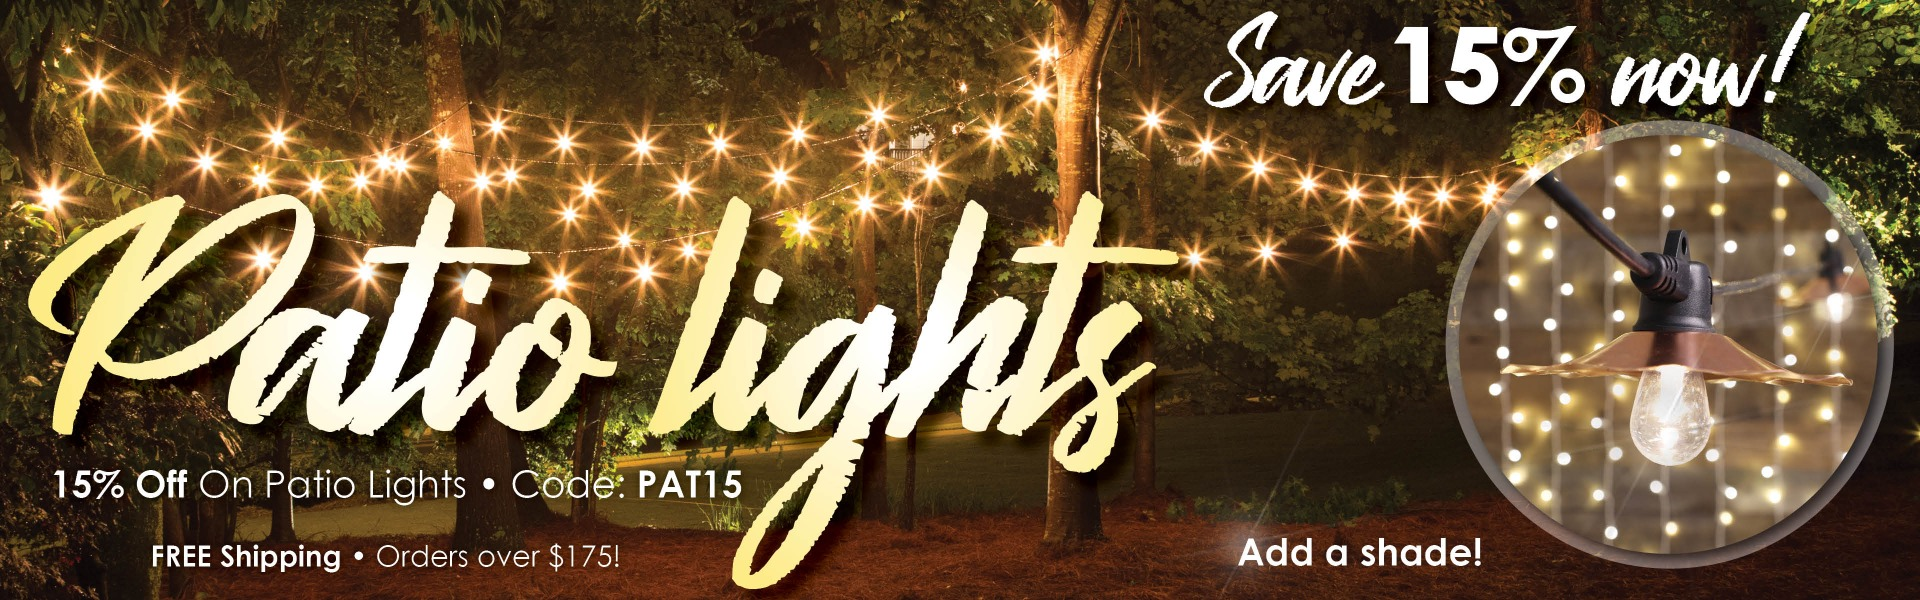 Shop Now! Save 15% on Patio Lights.